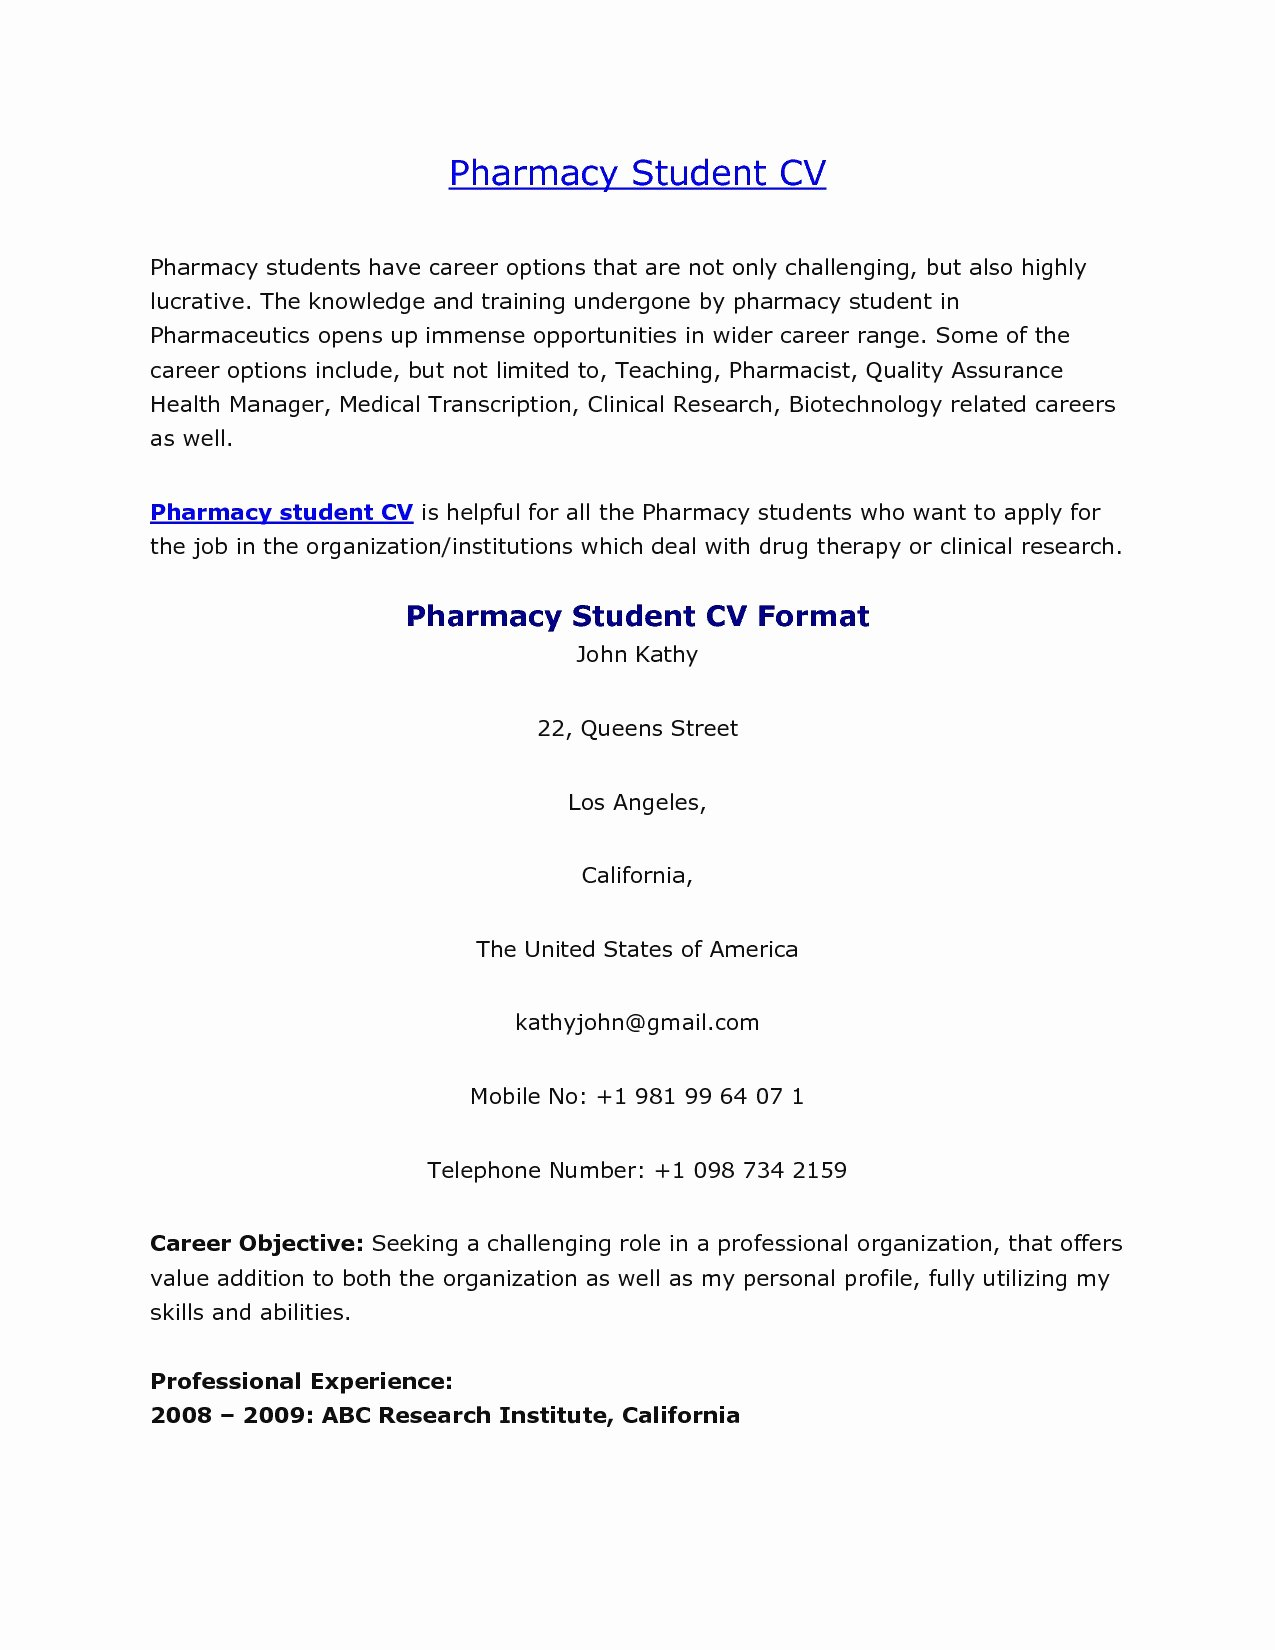 Pharmacy Curriculum Vitae Template New Resume format for Pharmacy Graduates Earpod